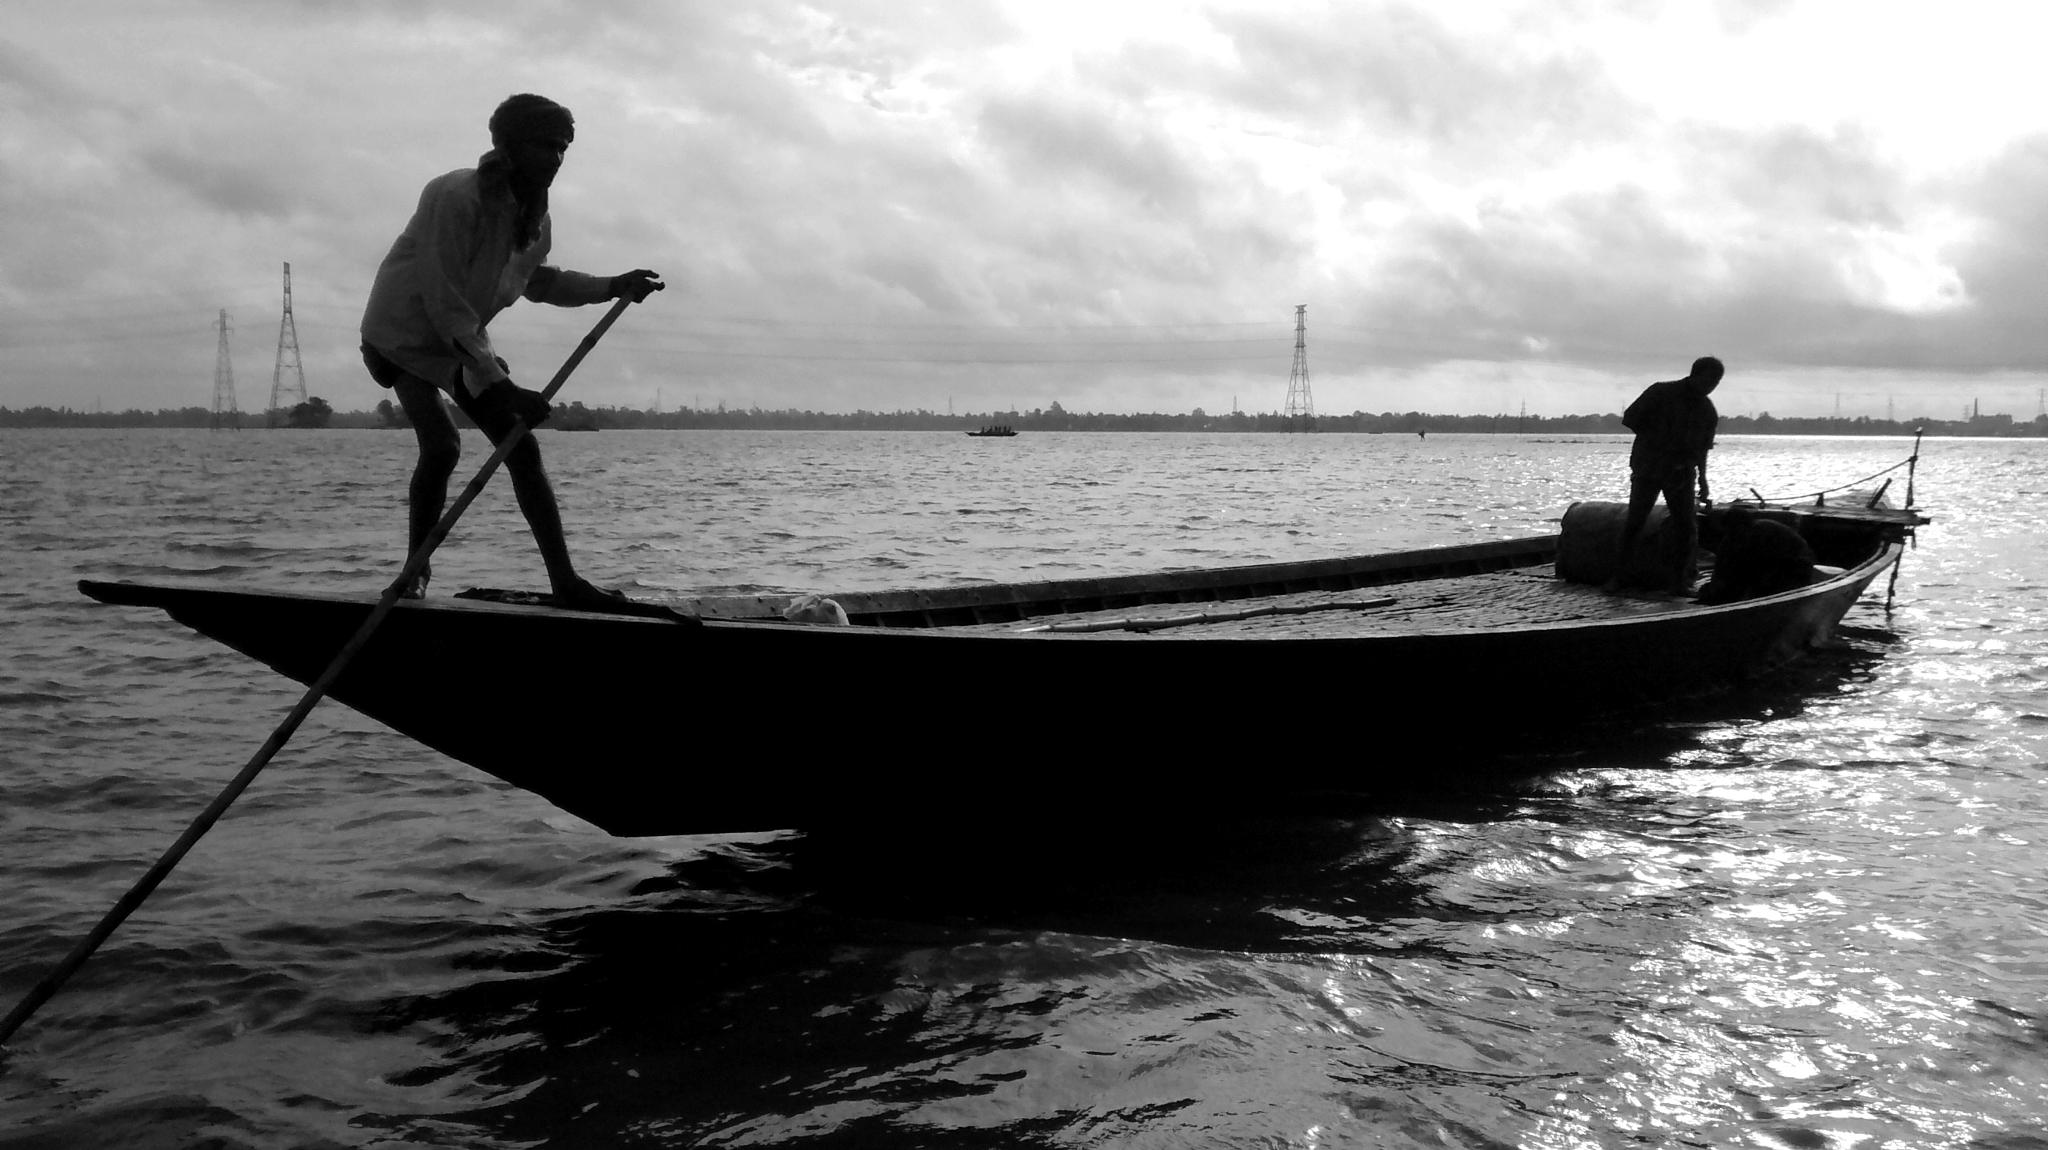 The Journey by Rezoan Mahbub